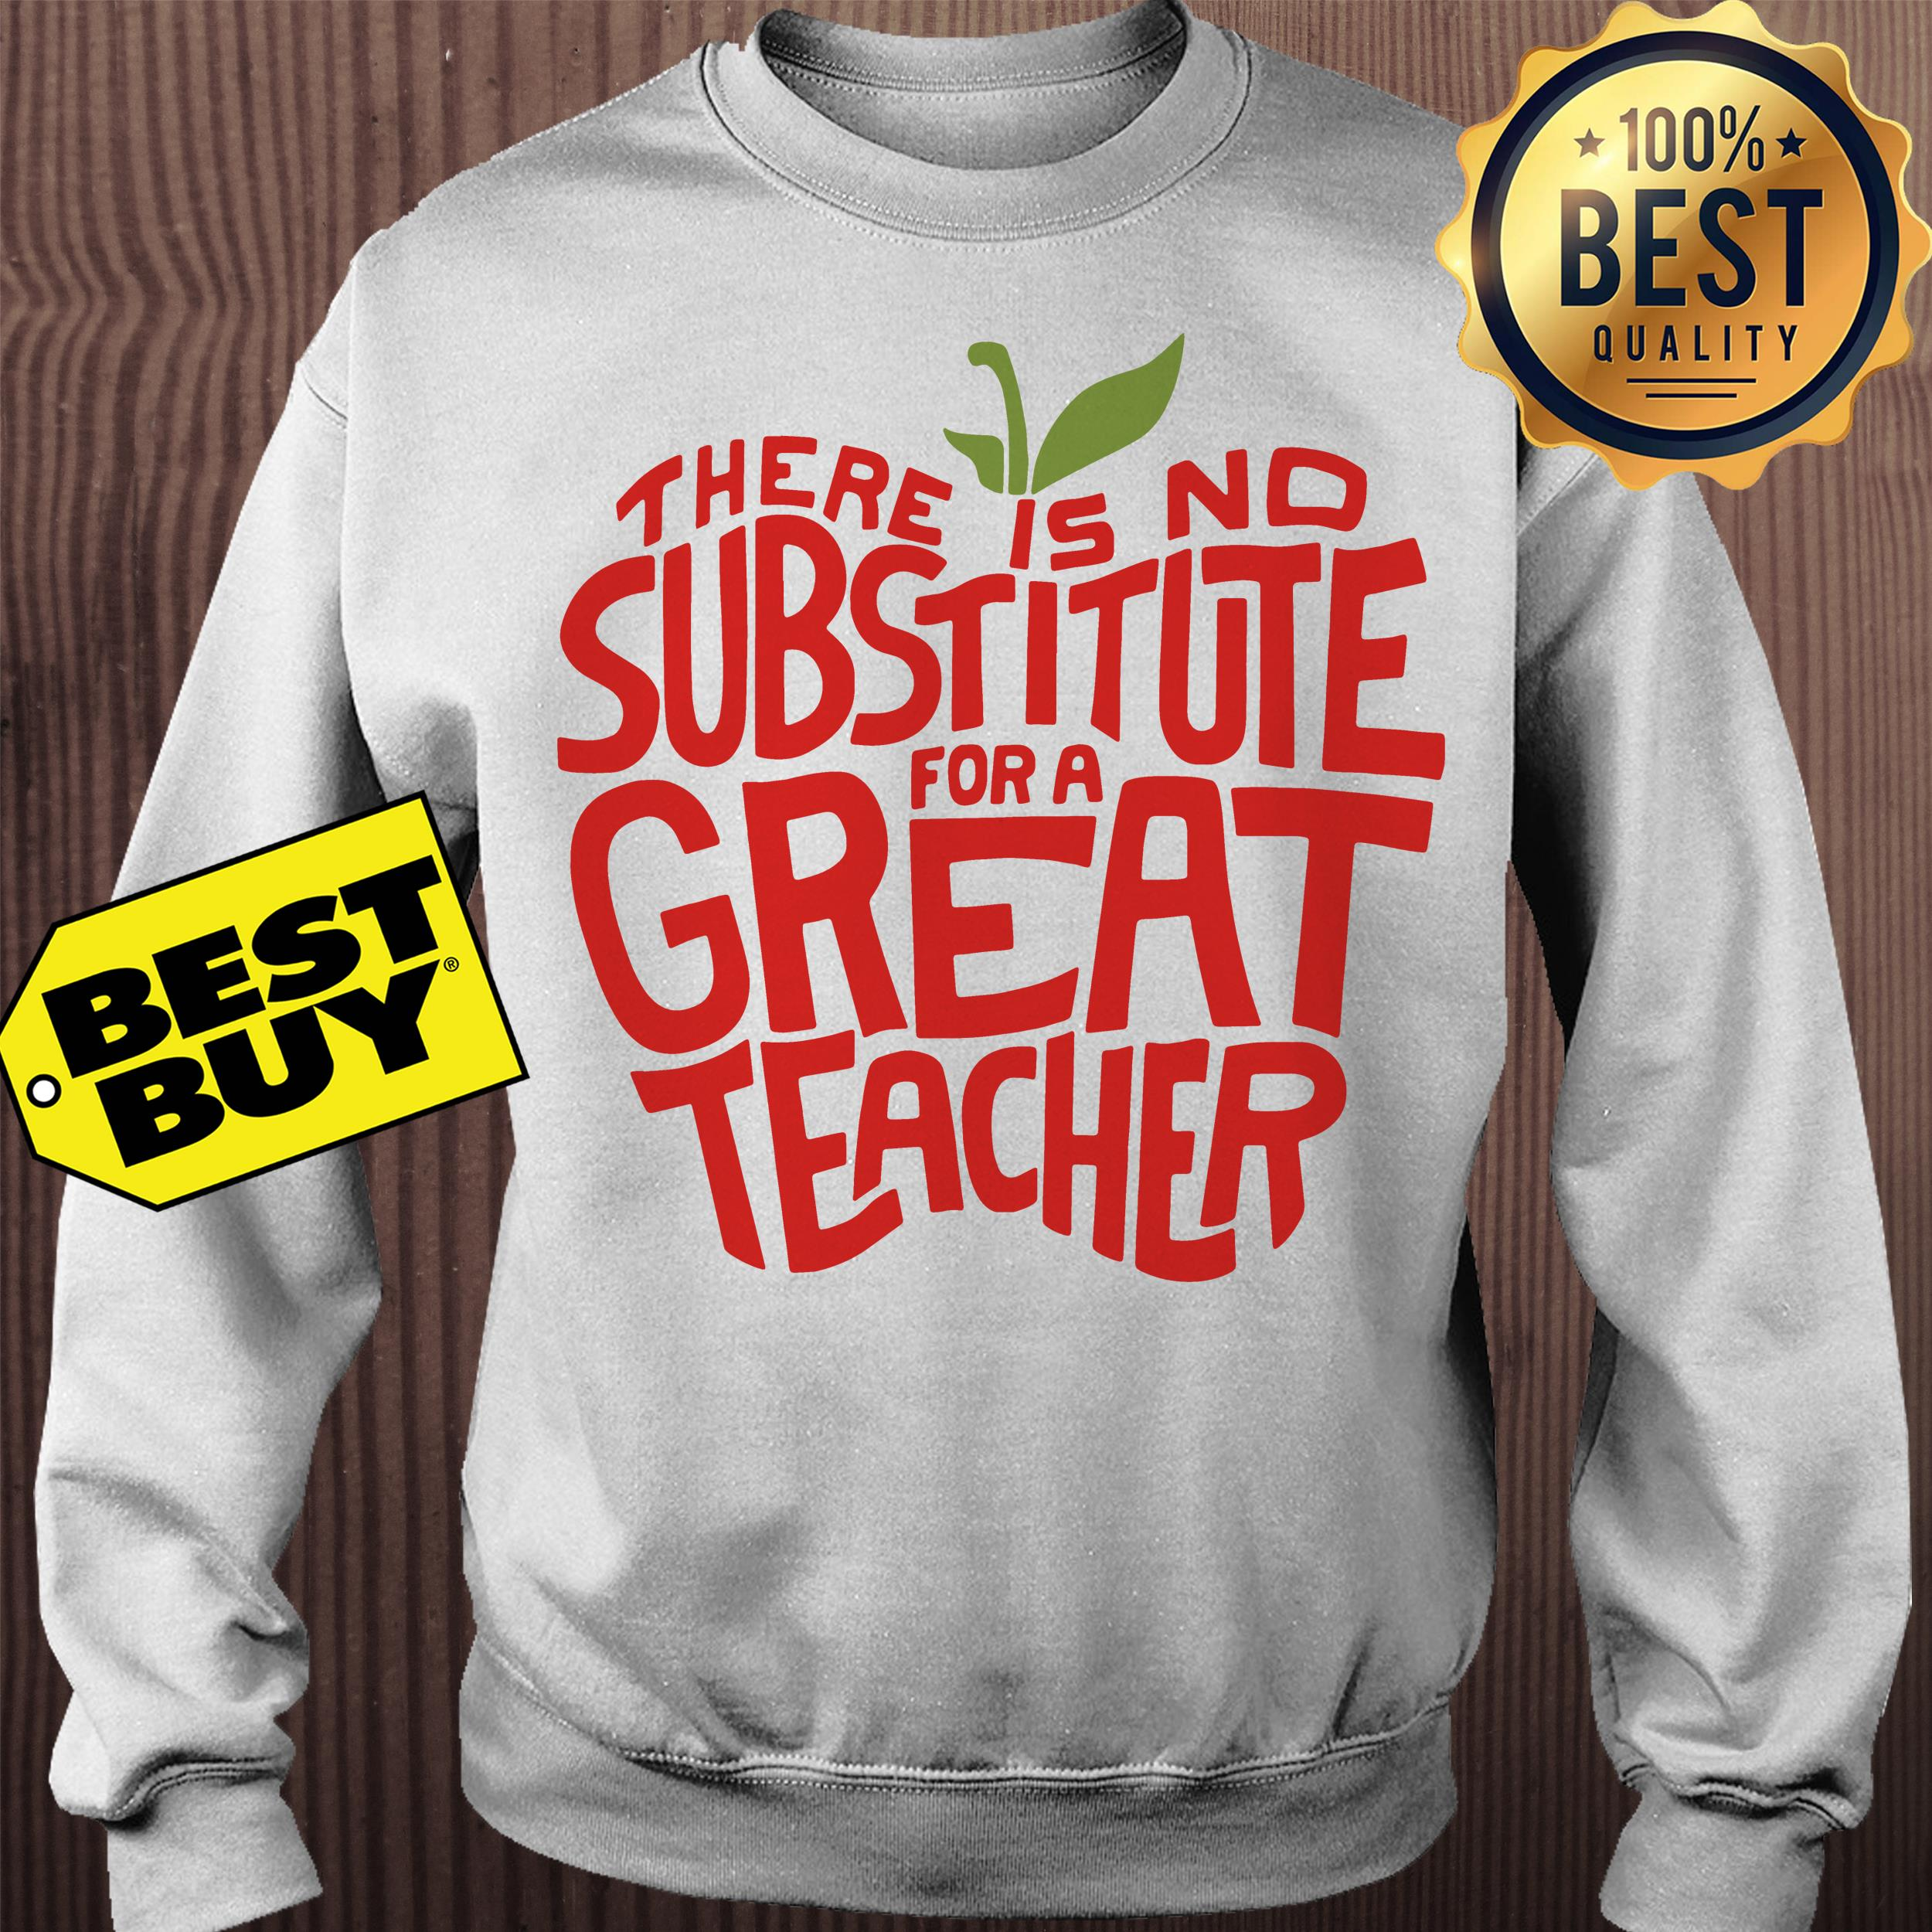 There is no substitute for a great teacher sweatshirt